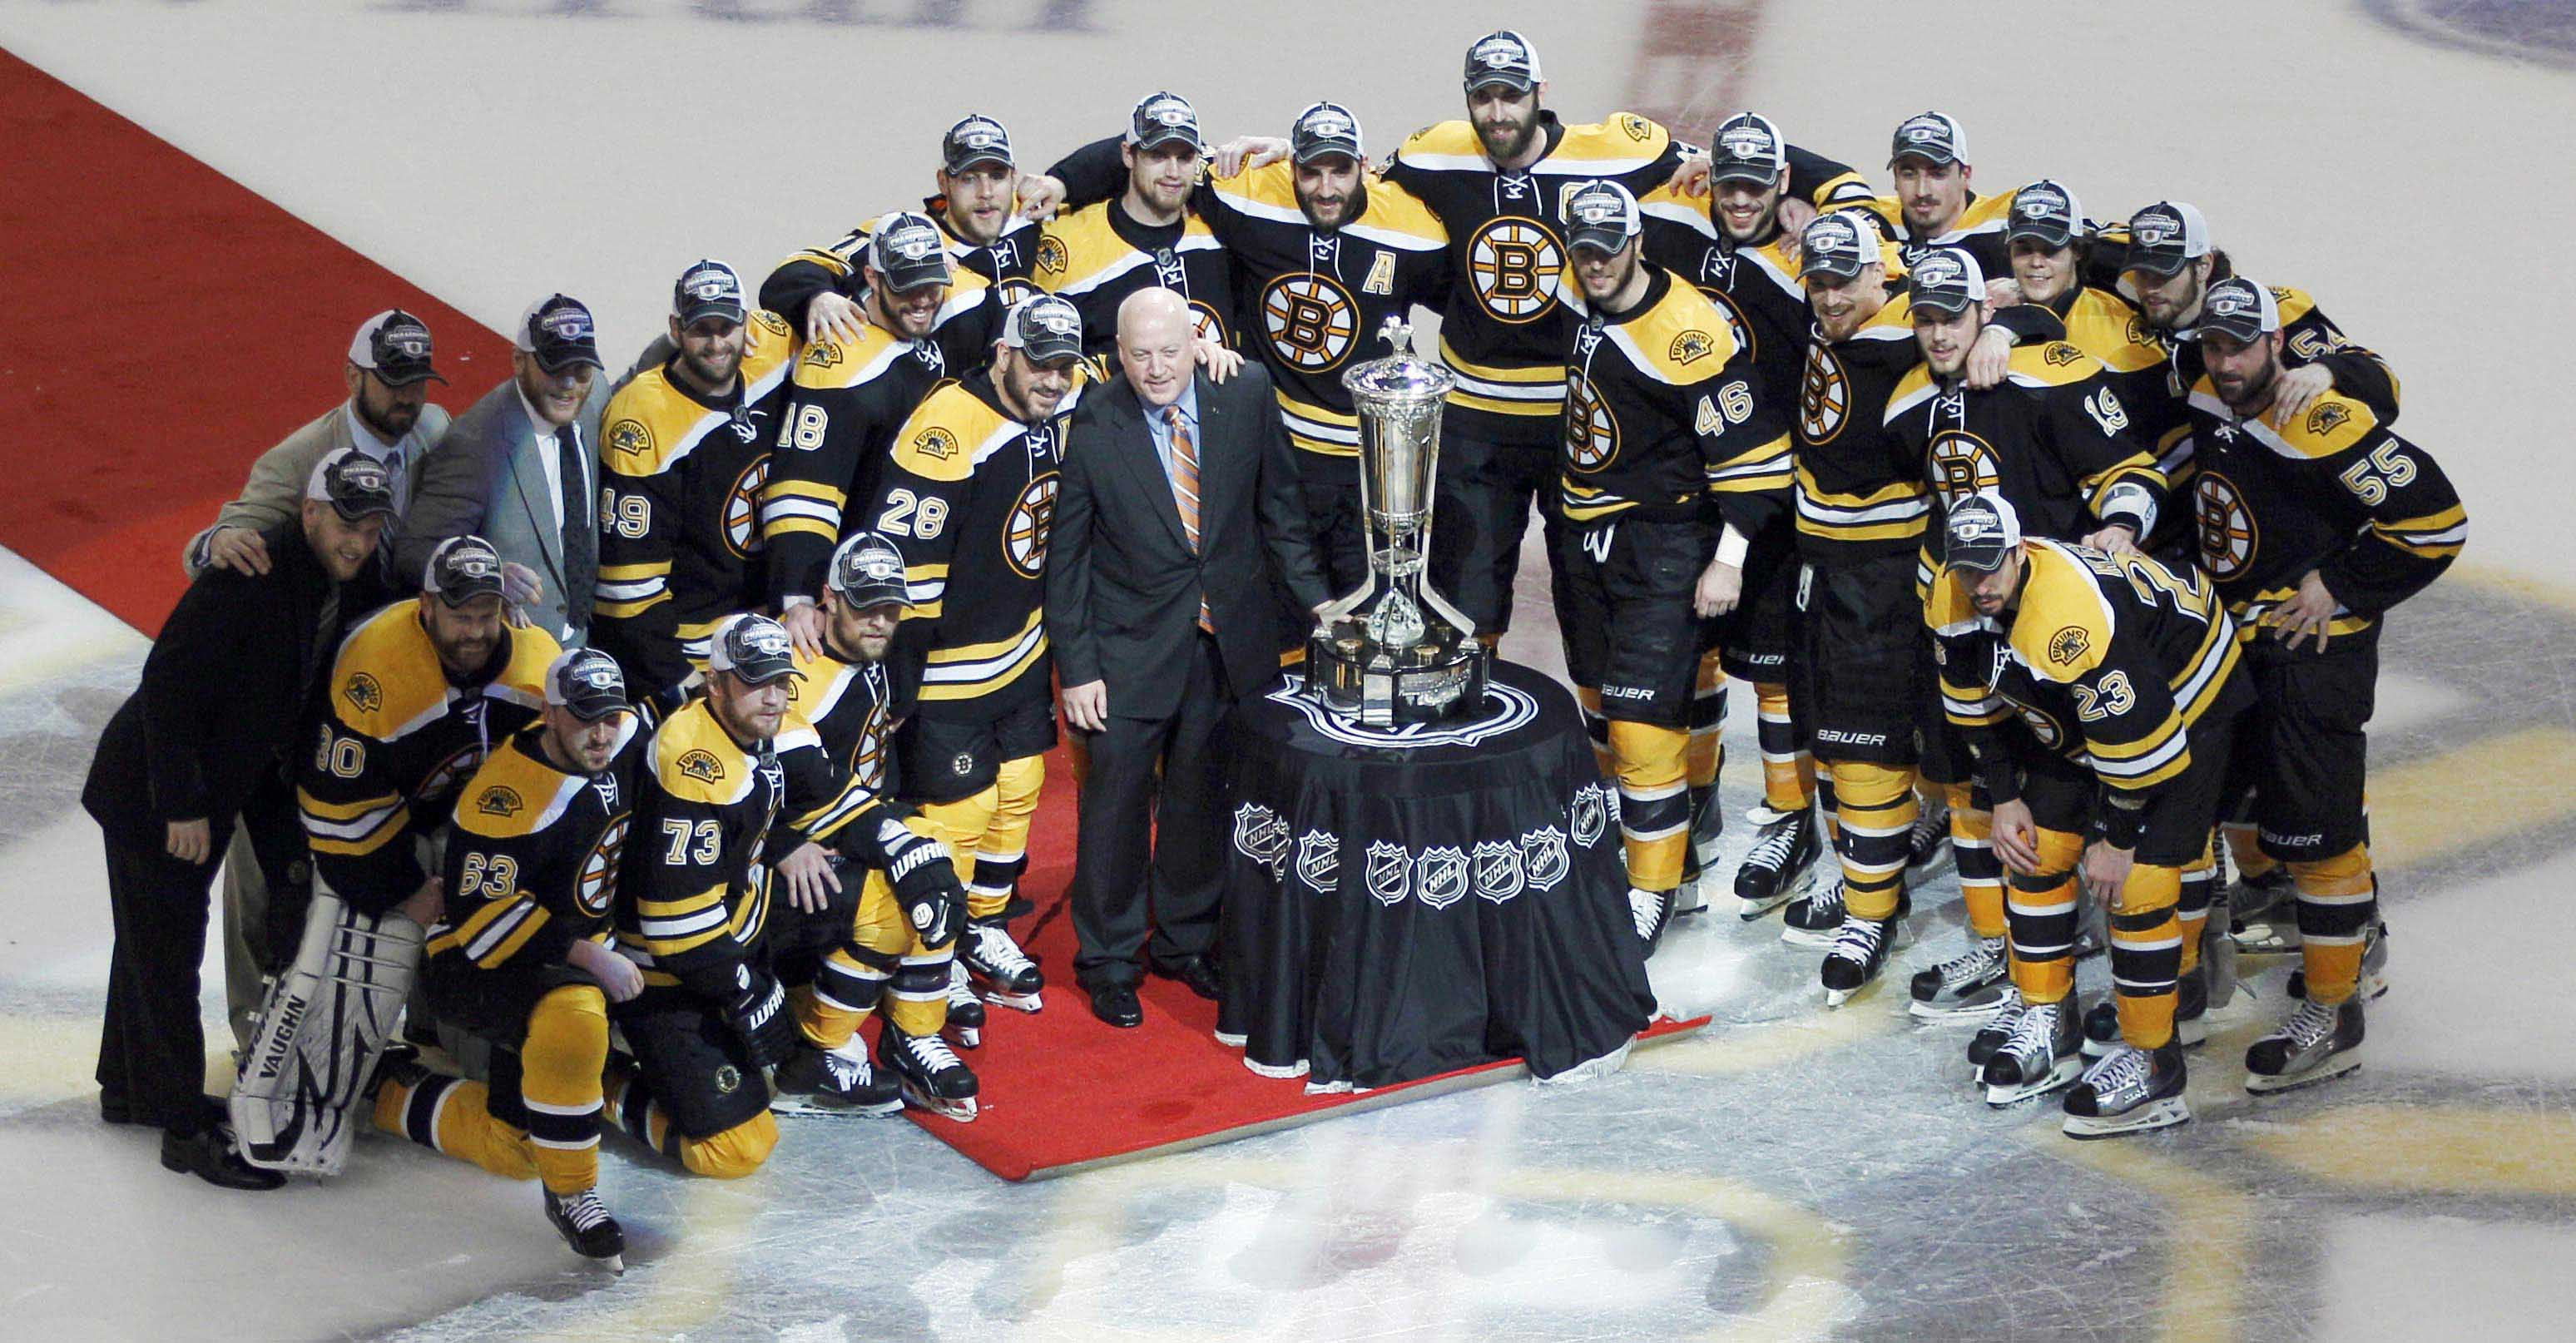 in 2011 Stanley Cup Finals